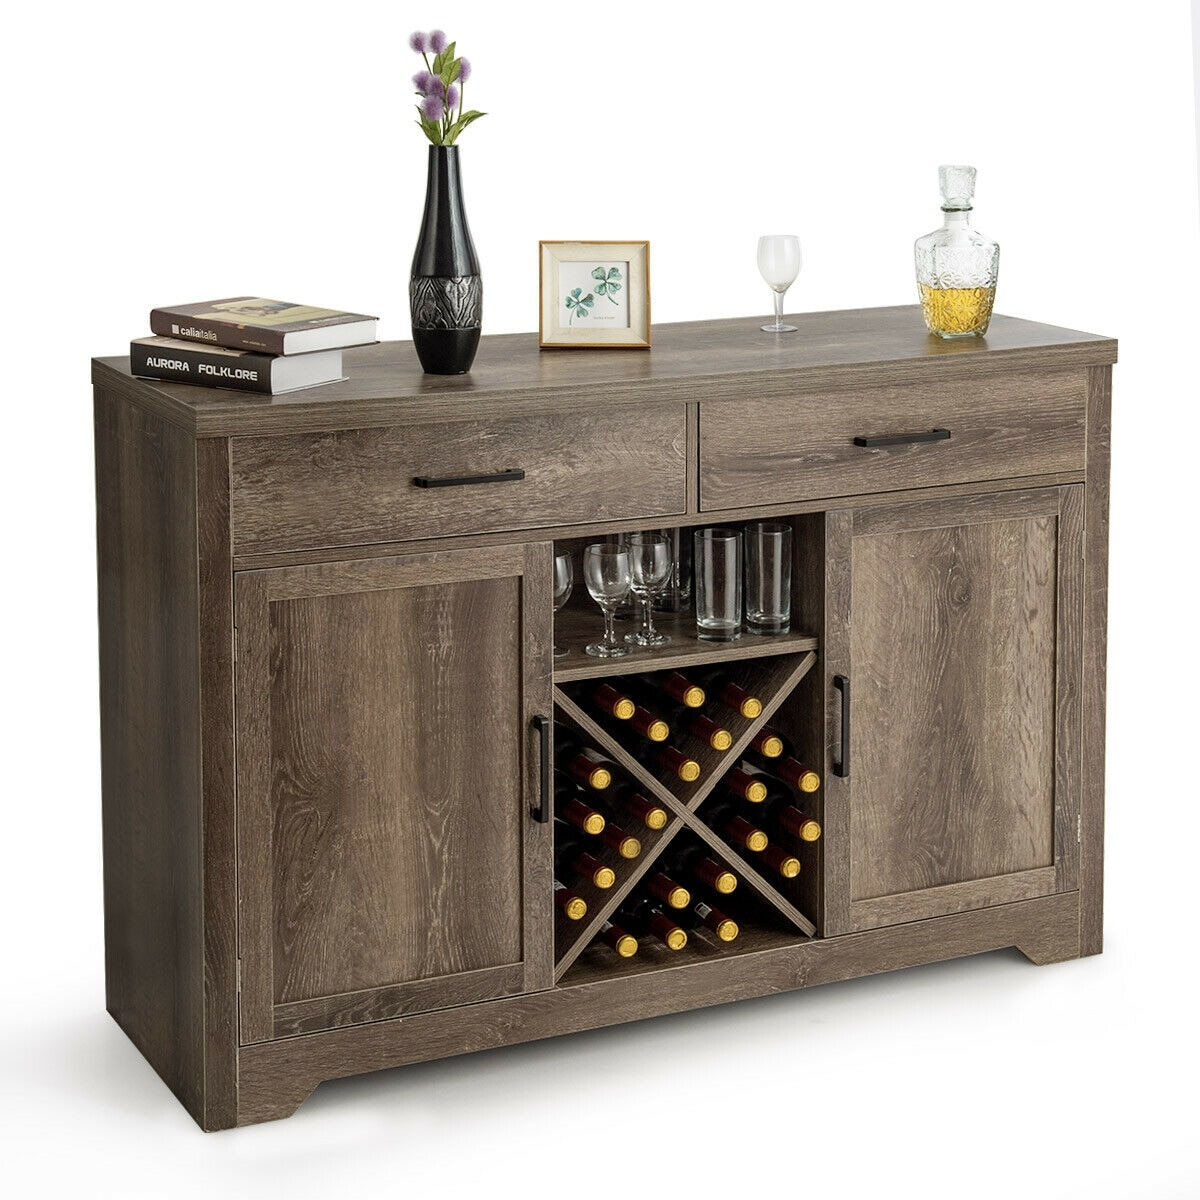 Picture of: Shop Costway Buffet Cabinet Sideboard Console Storage Cabinet Side Cabinet 52 X 18 X 36 On Sale Overstock 27876764